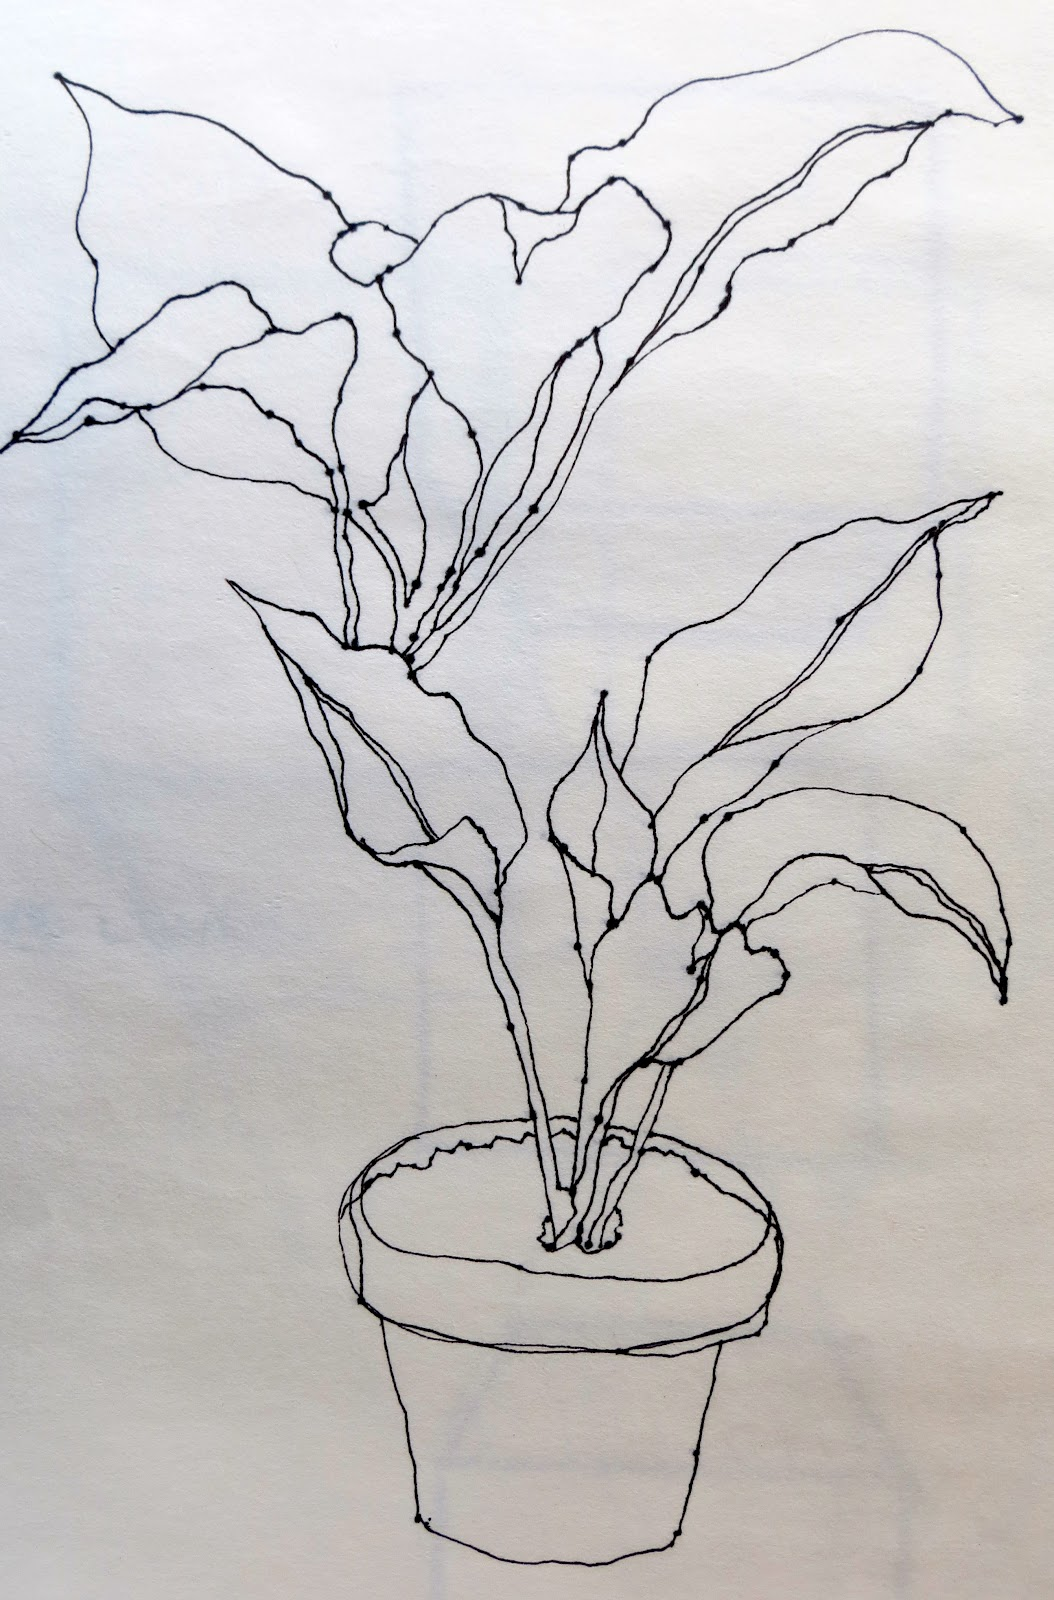 Contour Line Drawing Of A Plant : The painted prism sketchbook assignment trees leaves